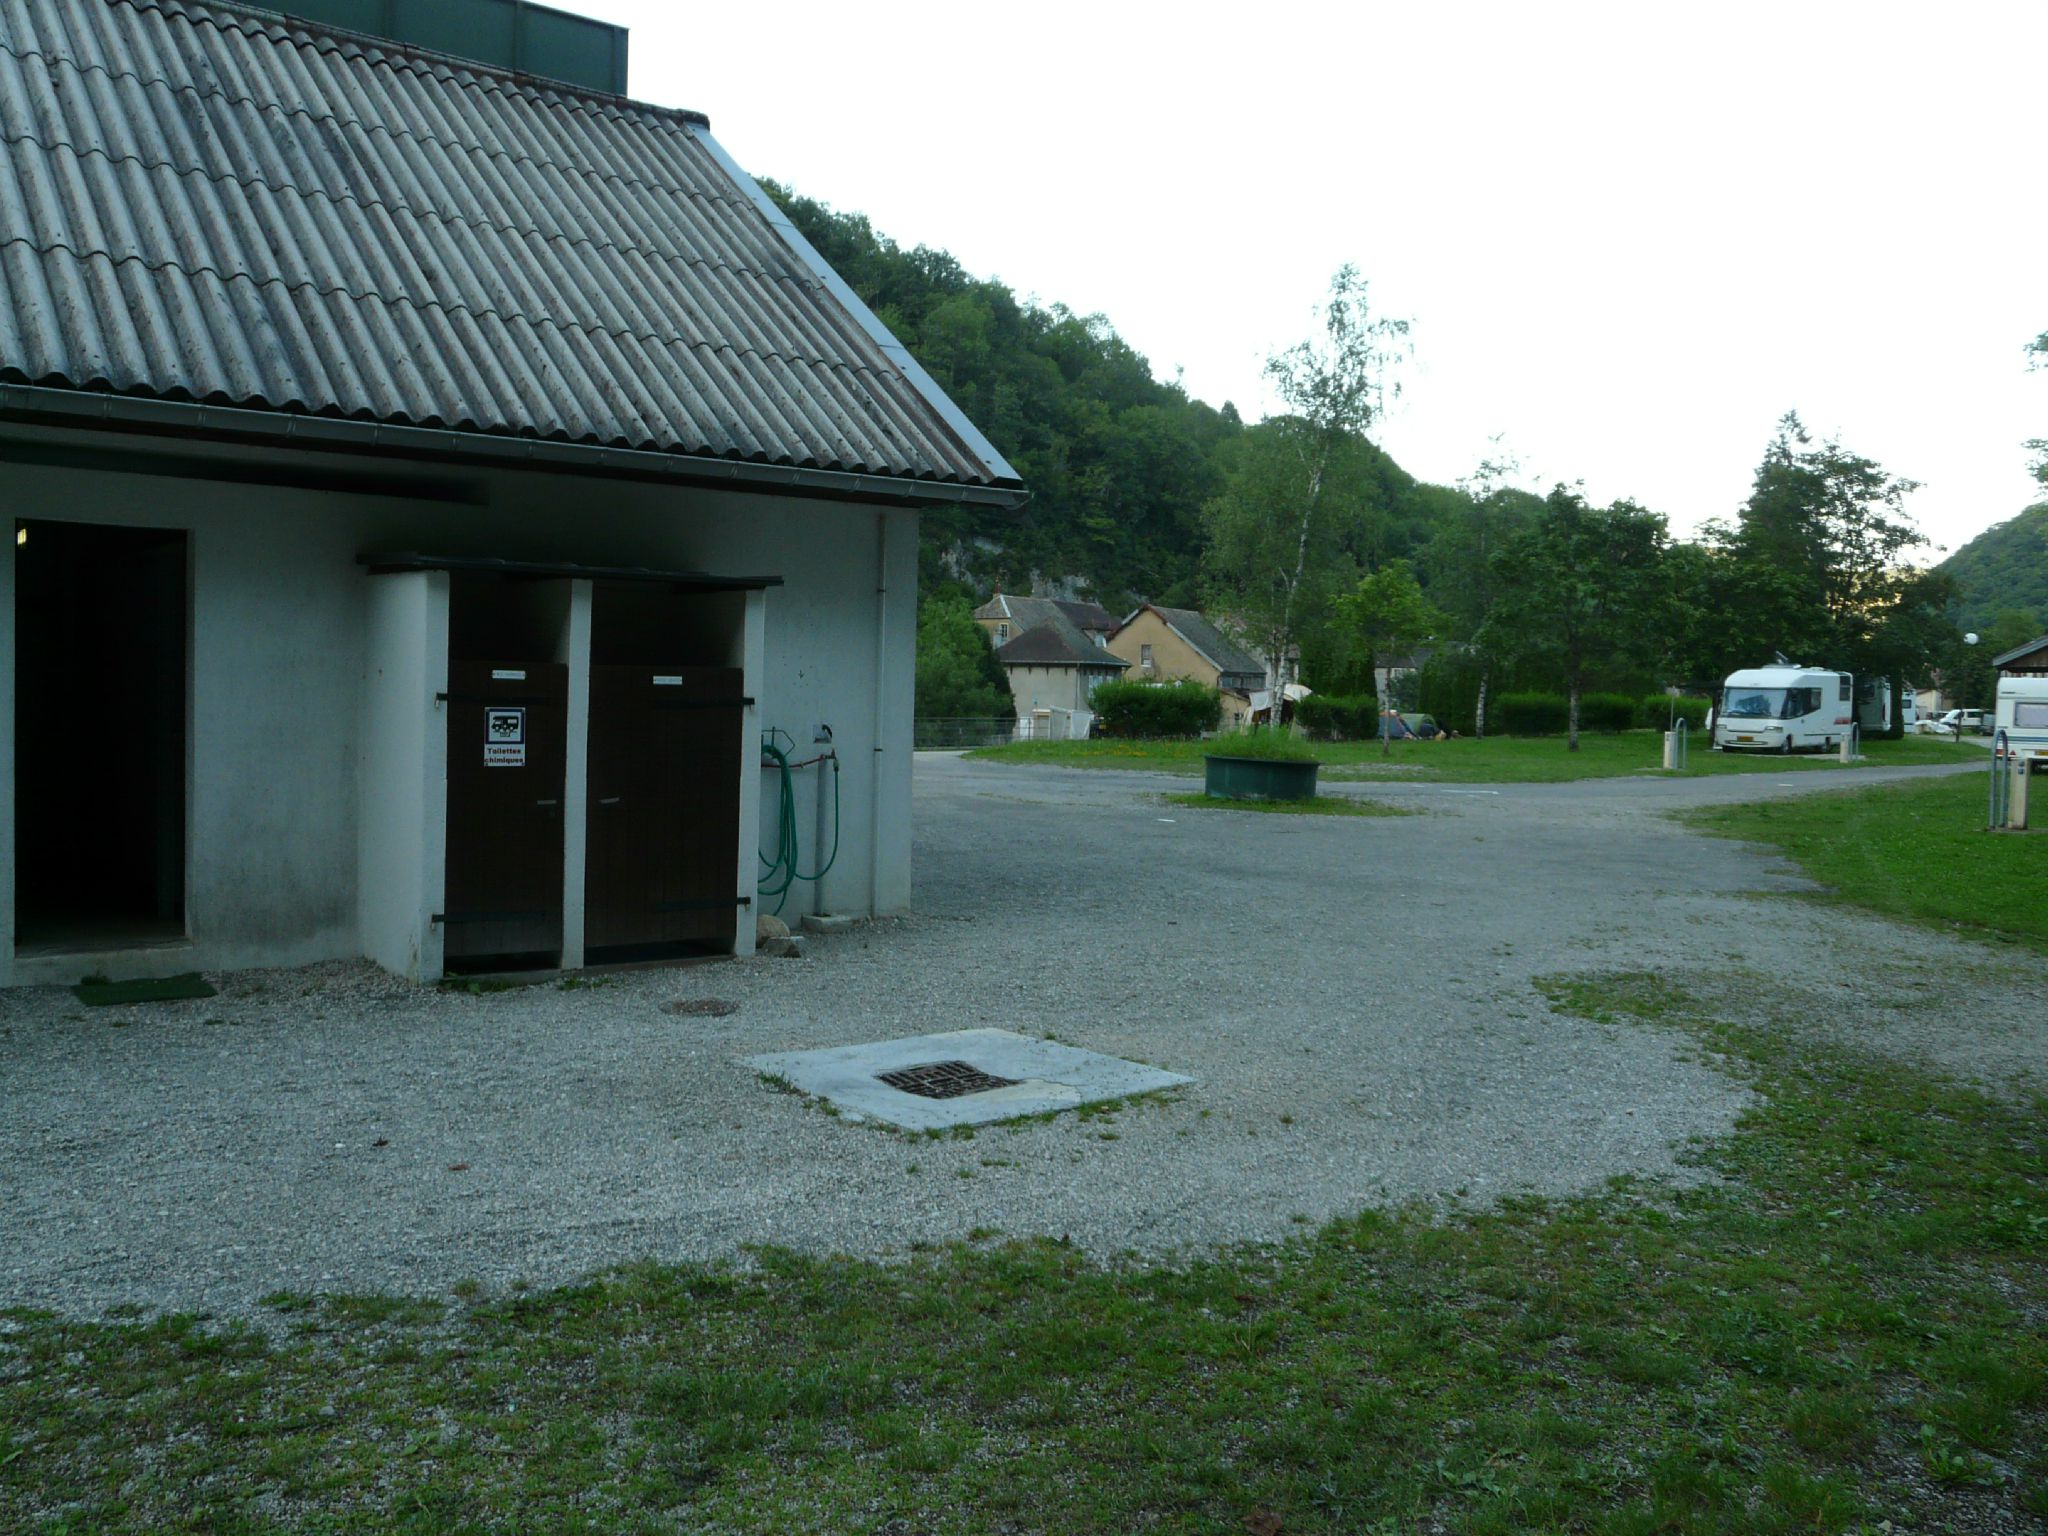 03-Lods-Camping (2)